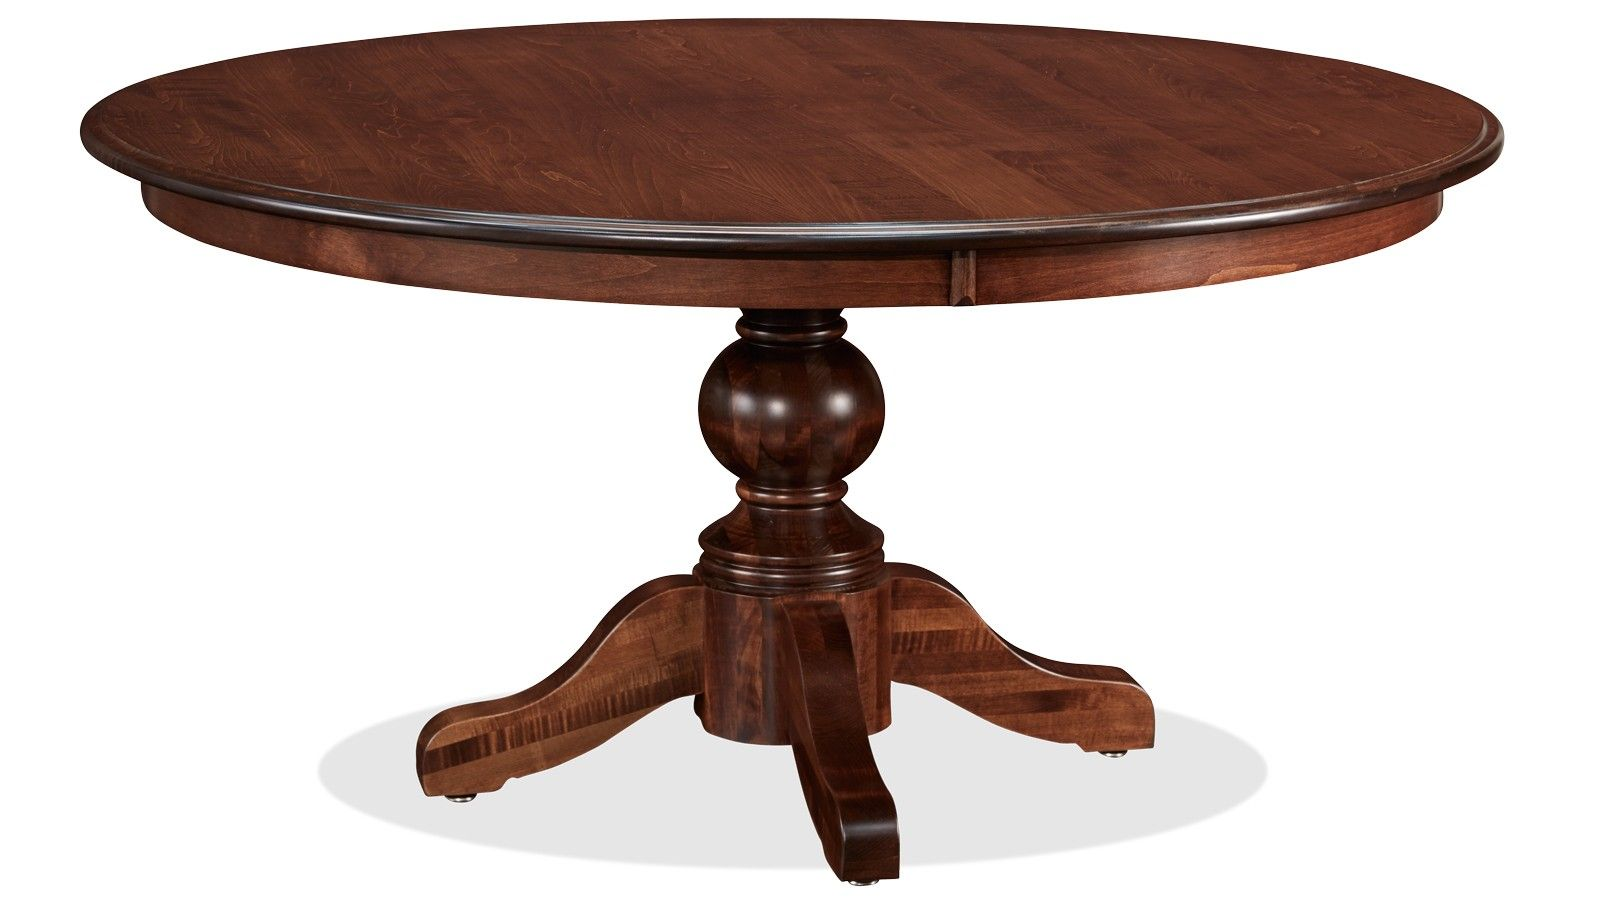 Baytown Asbury Maple 60 60 Round Dining Table Dining Table With